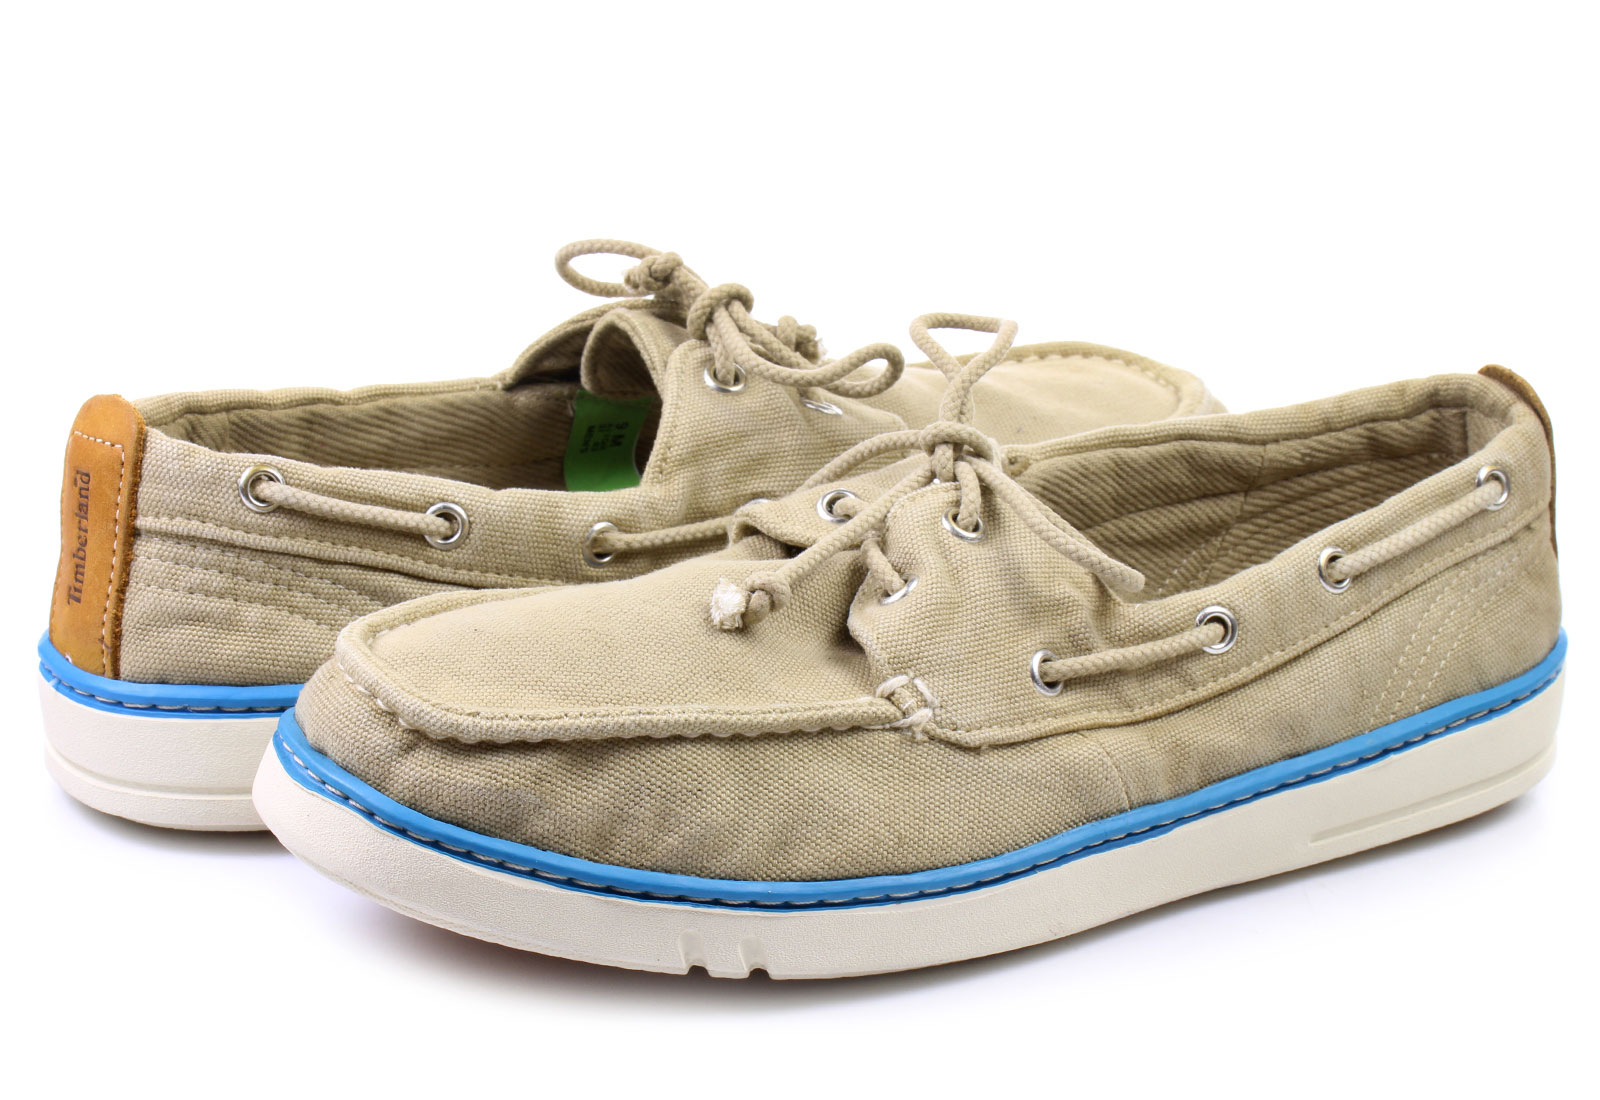 Coloring a Timberland Shoes | Timberlands shoes, Shoes, Make